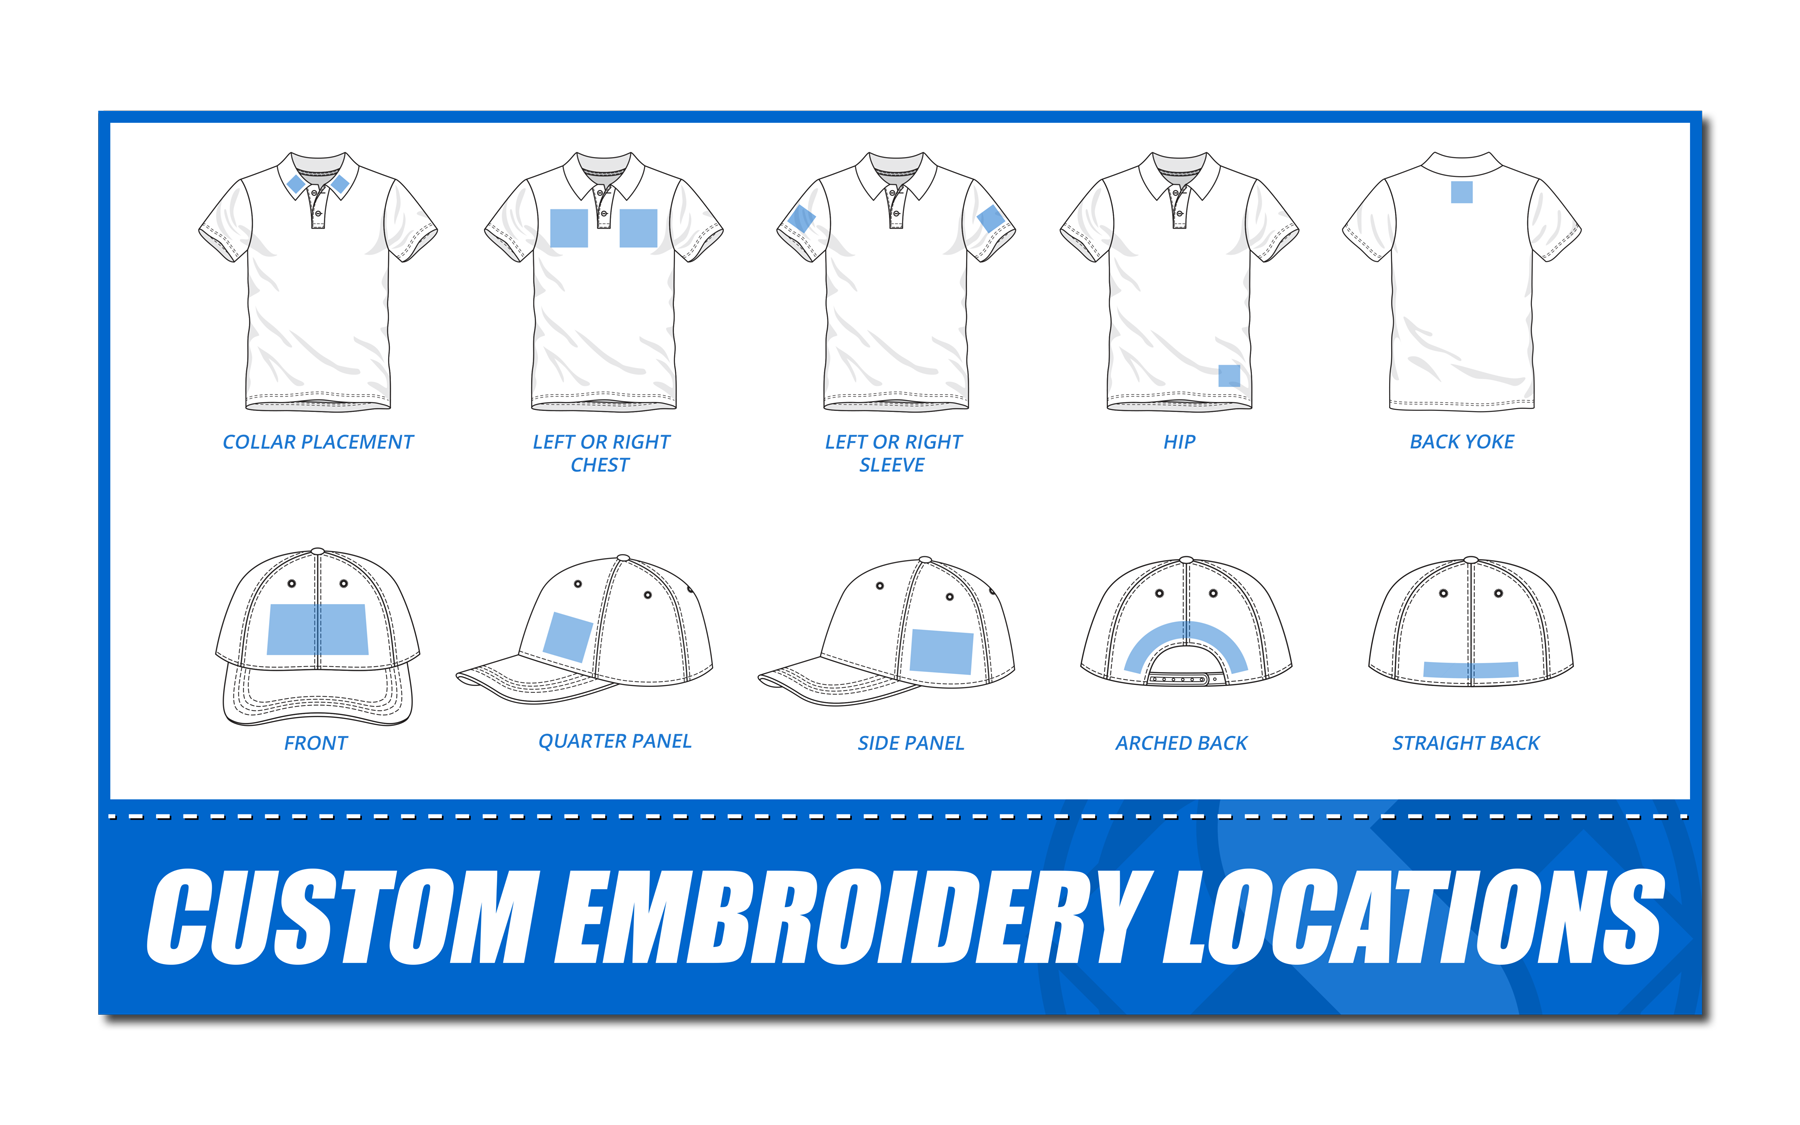 HS - Shirt Sizes - Custom Embroidery Locations